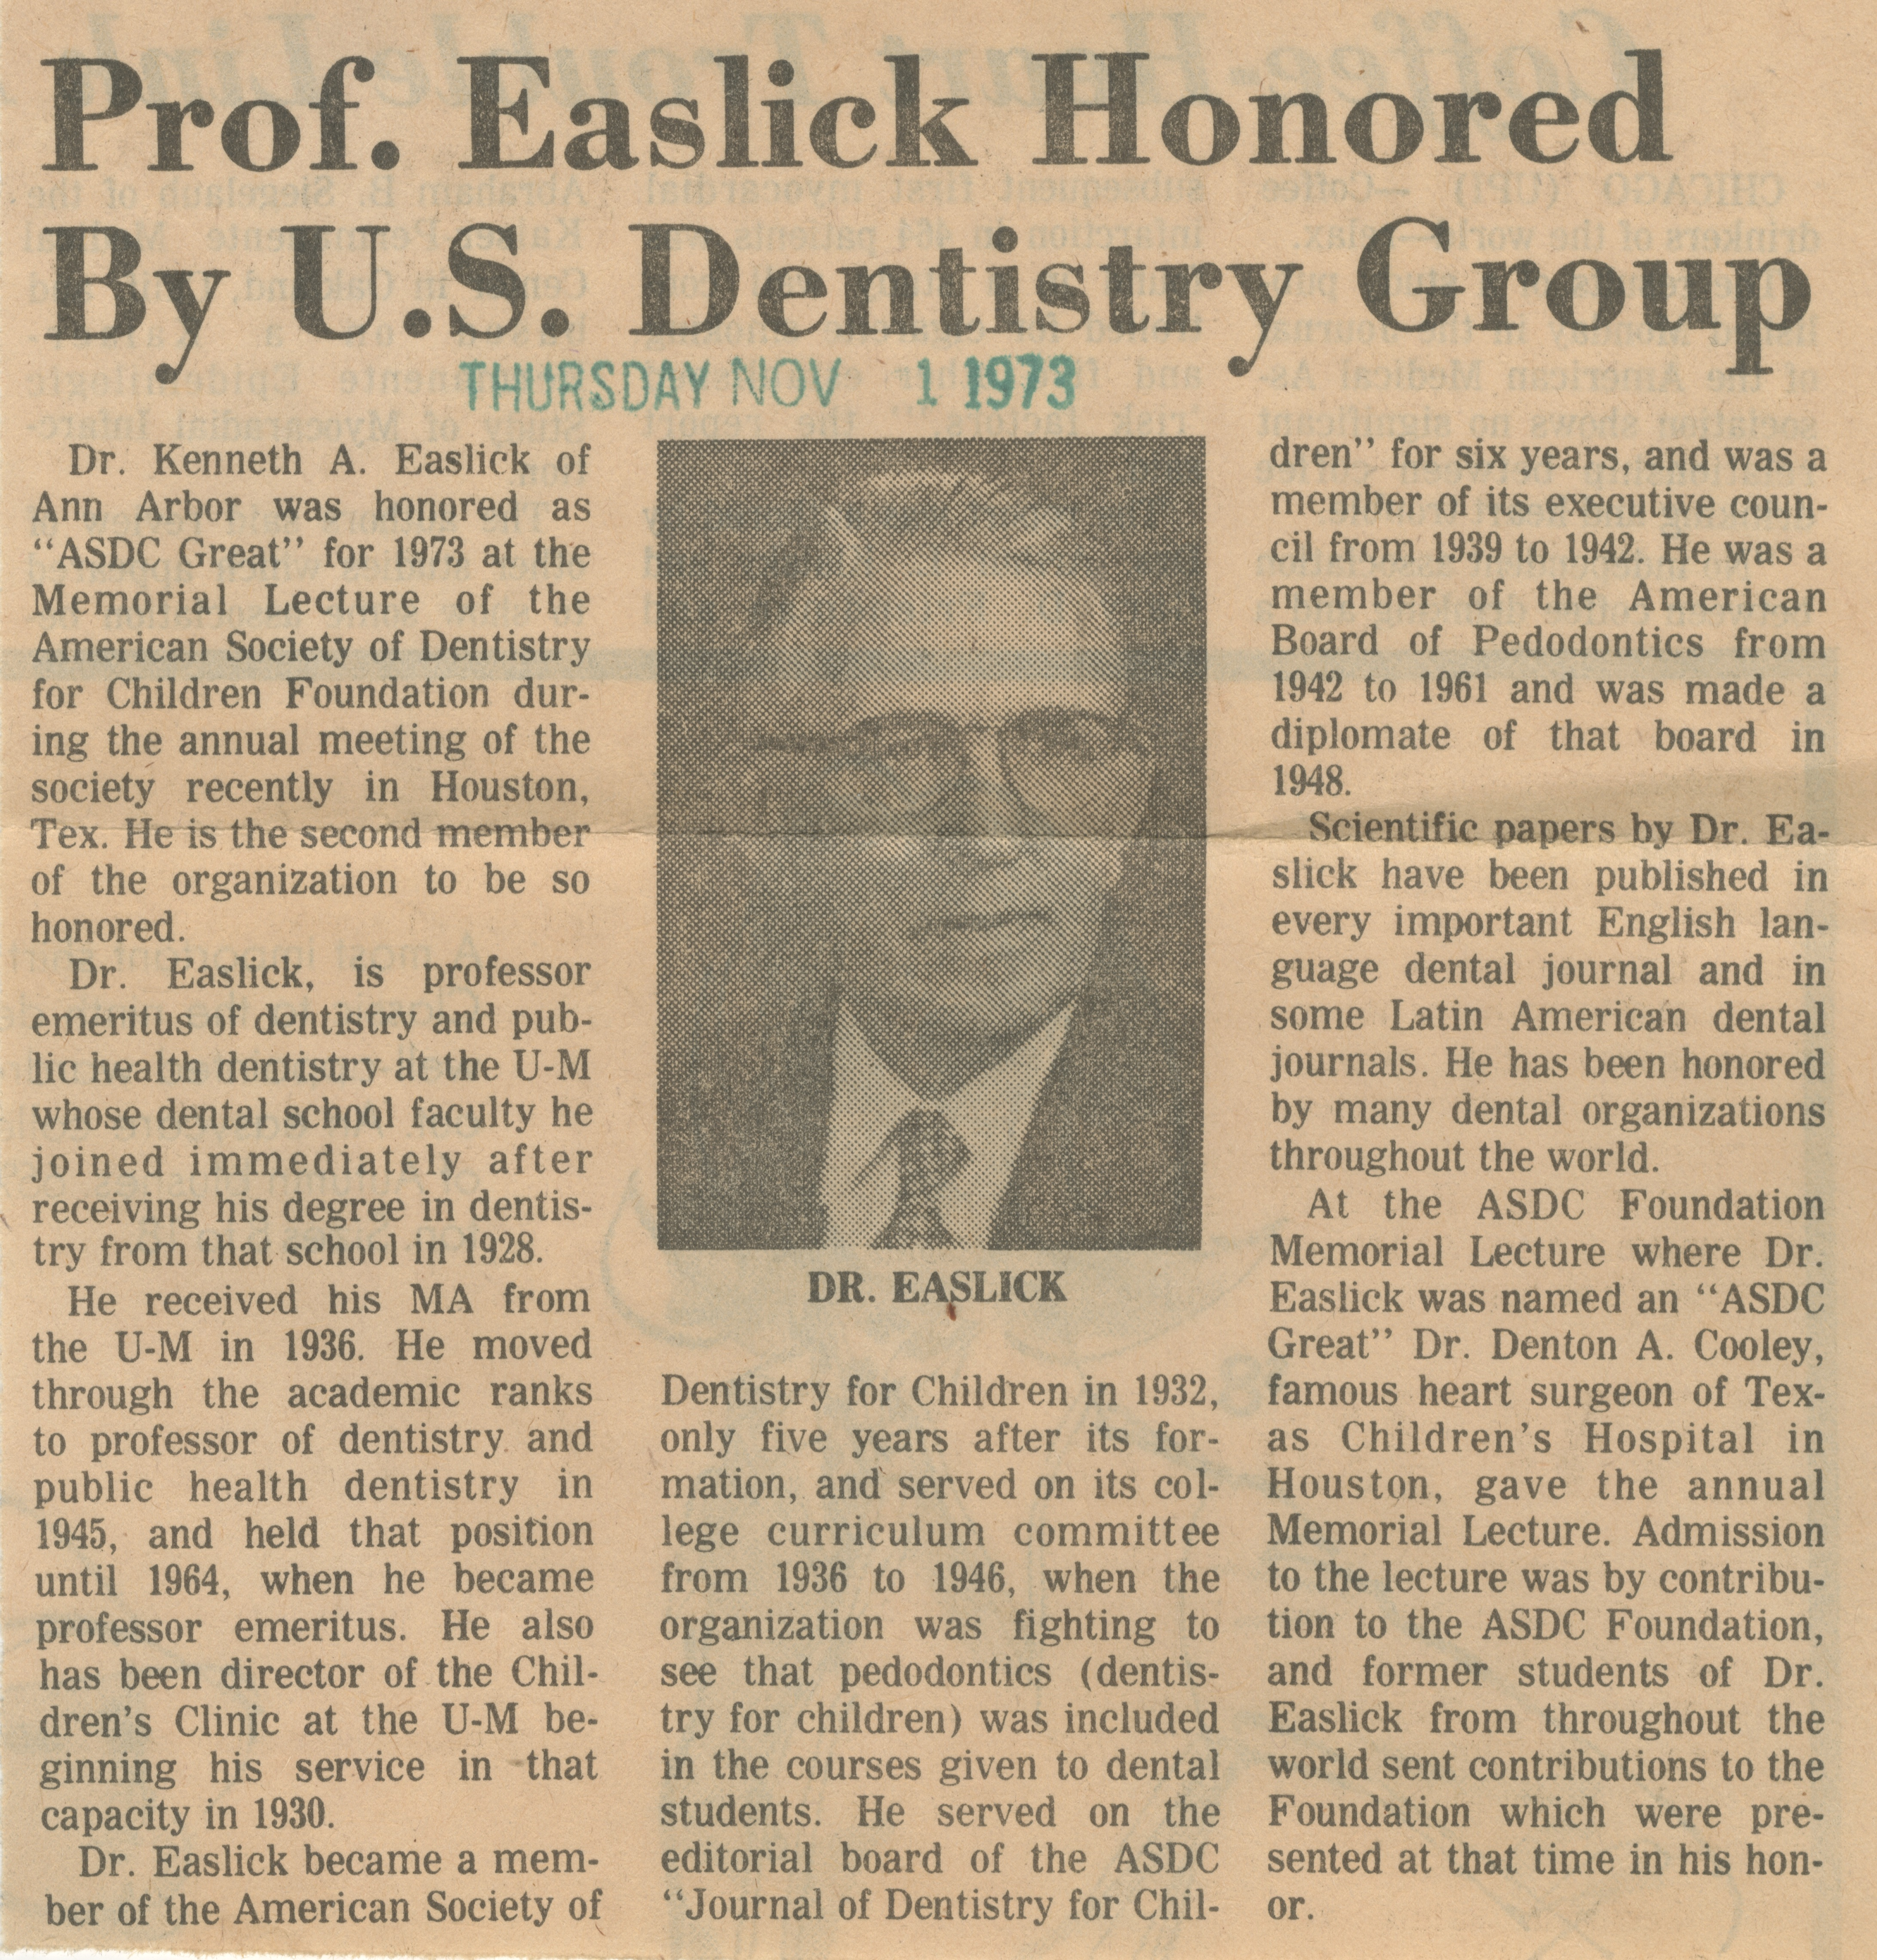 Prof. Easlick Honored By U.S. Dentistry Group image